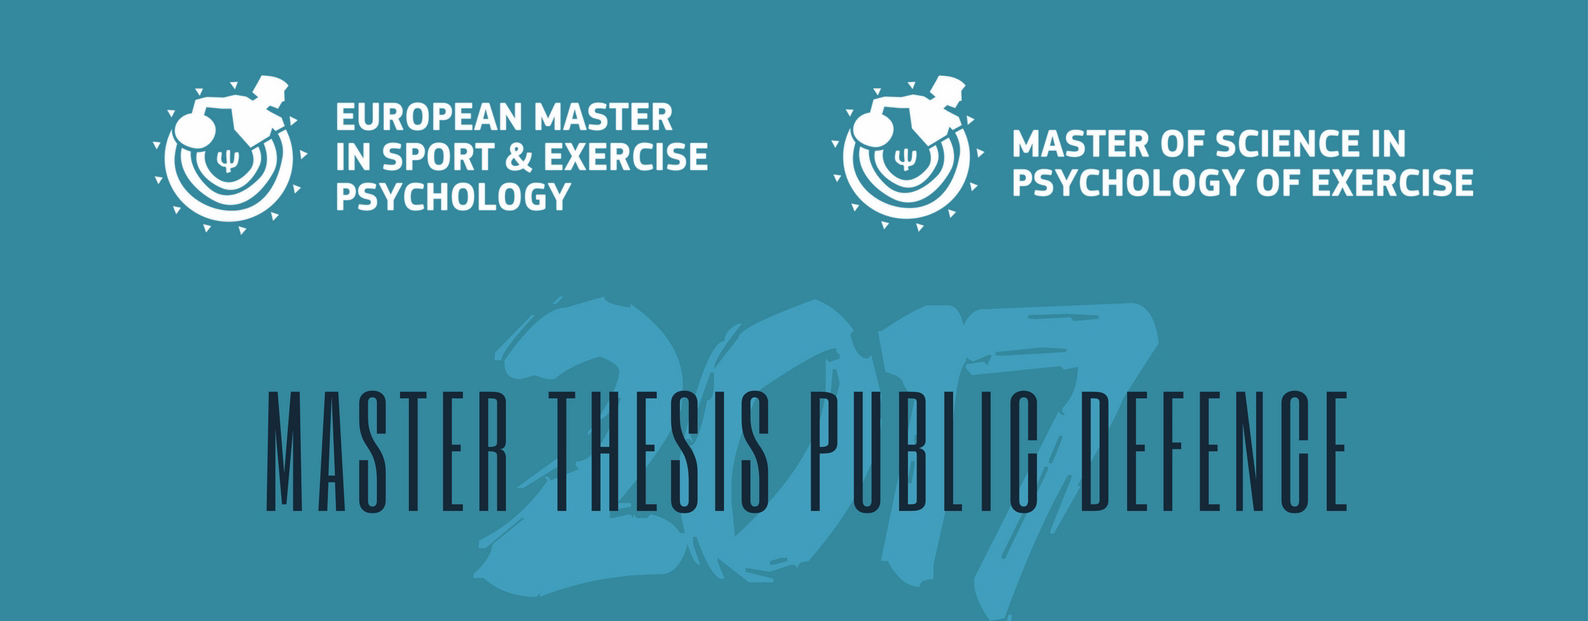 MSc Thesis Public Defence: Tuesday 13/6, Maria, Stella & Nollaig